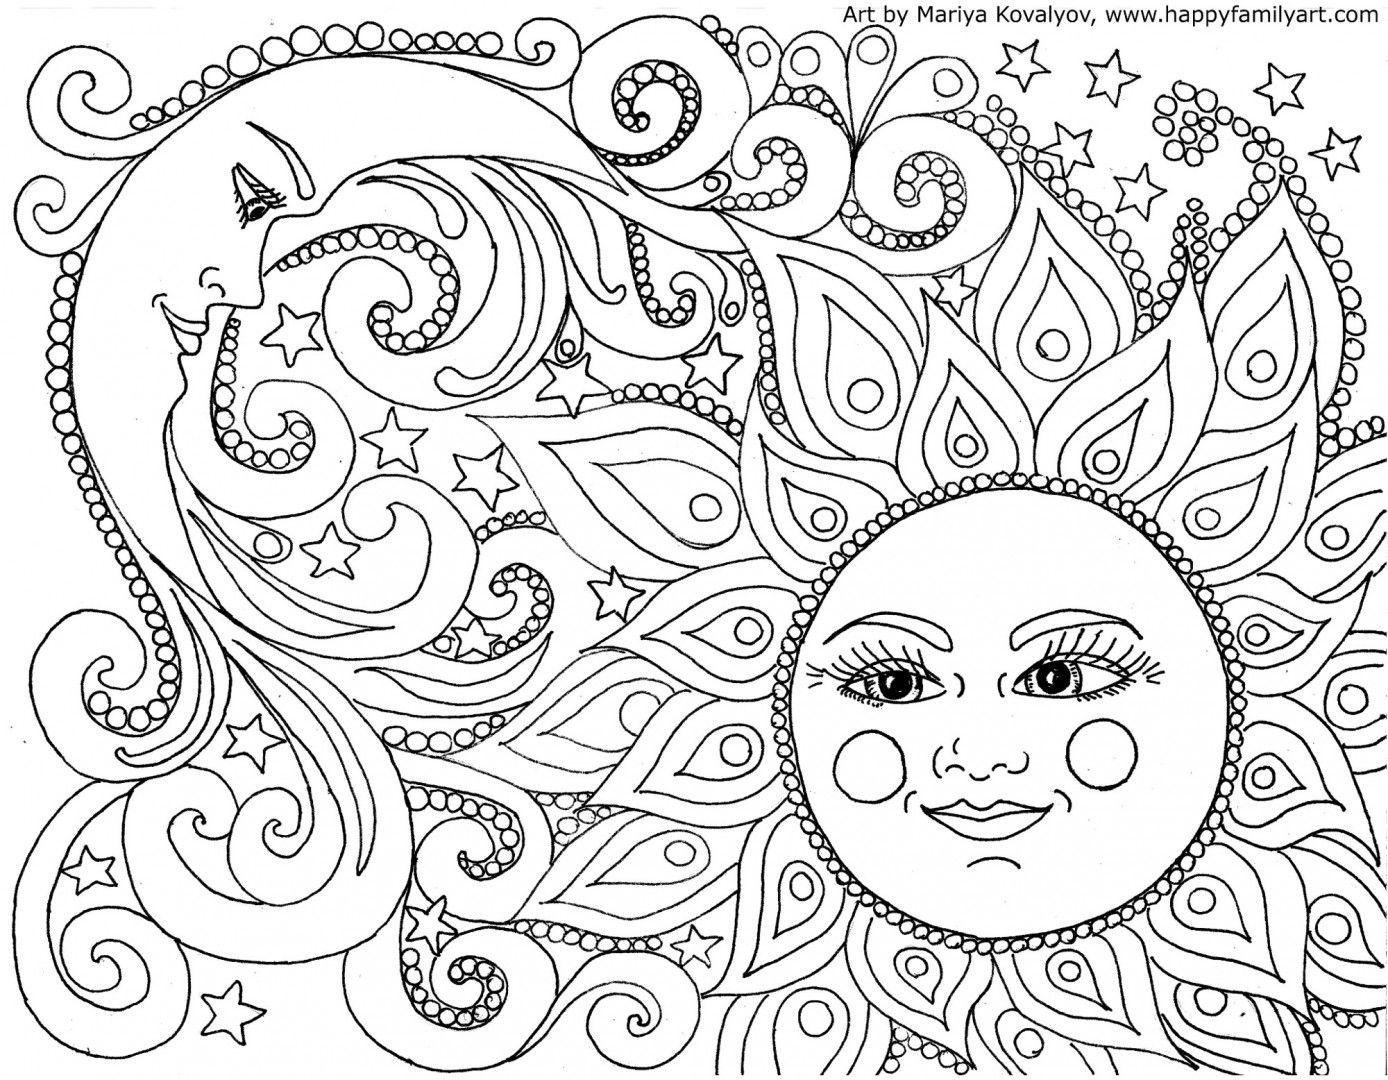 Meditative Coloring Pages